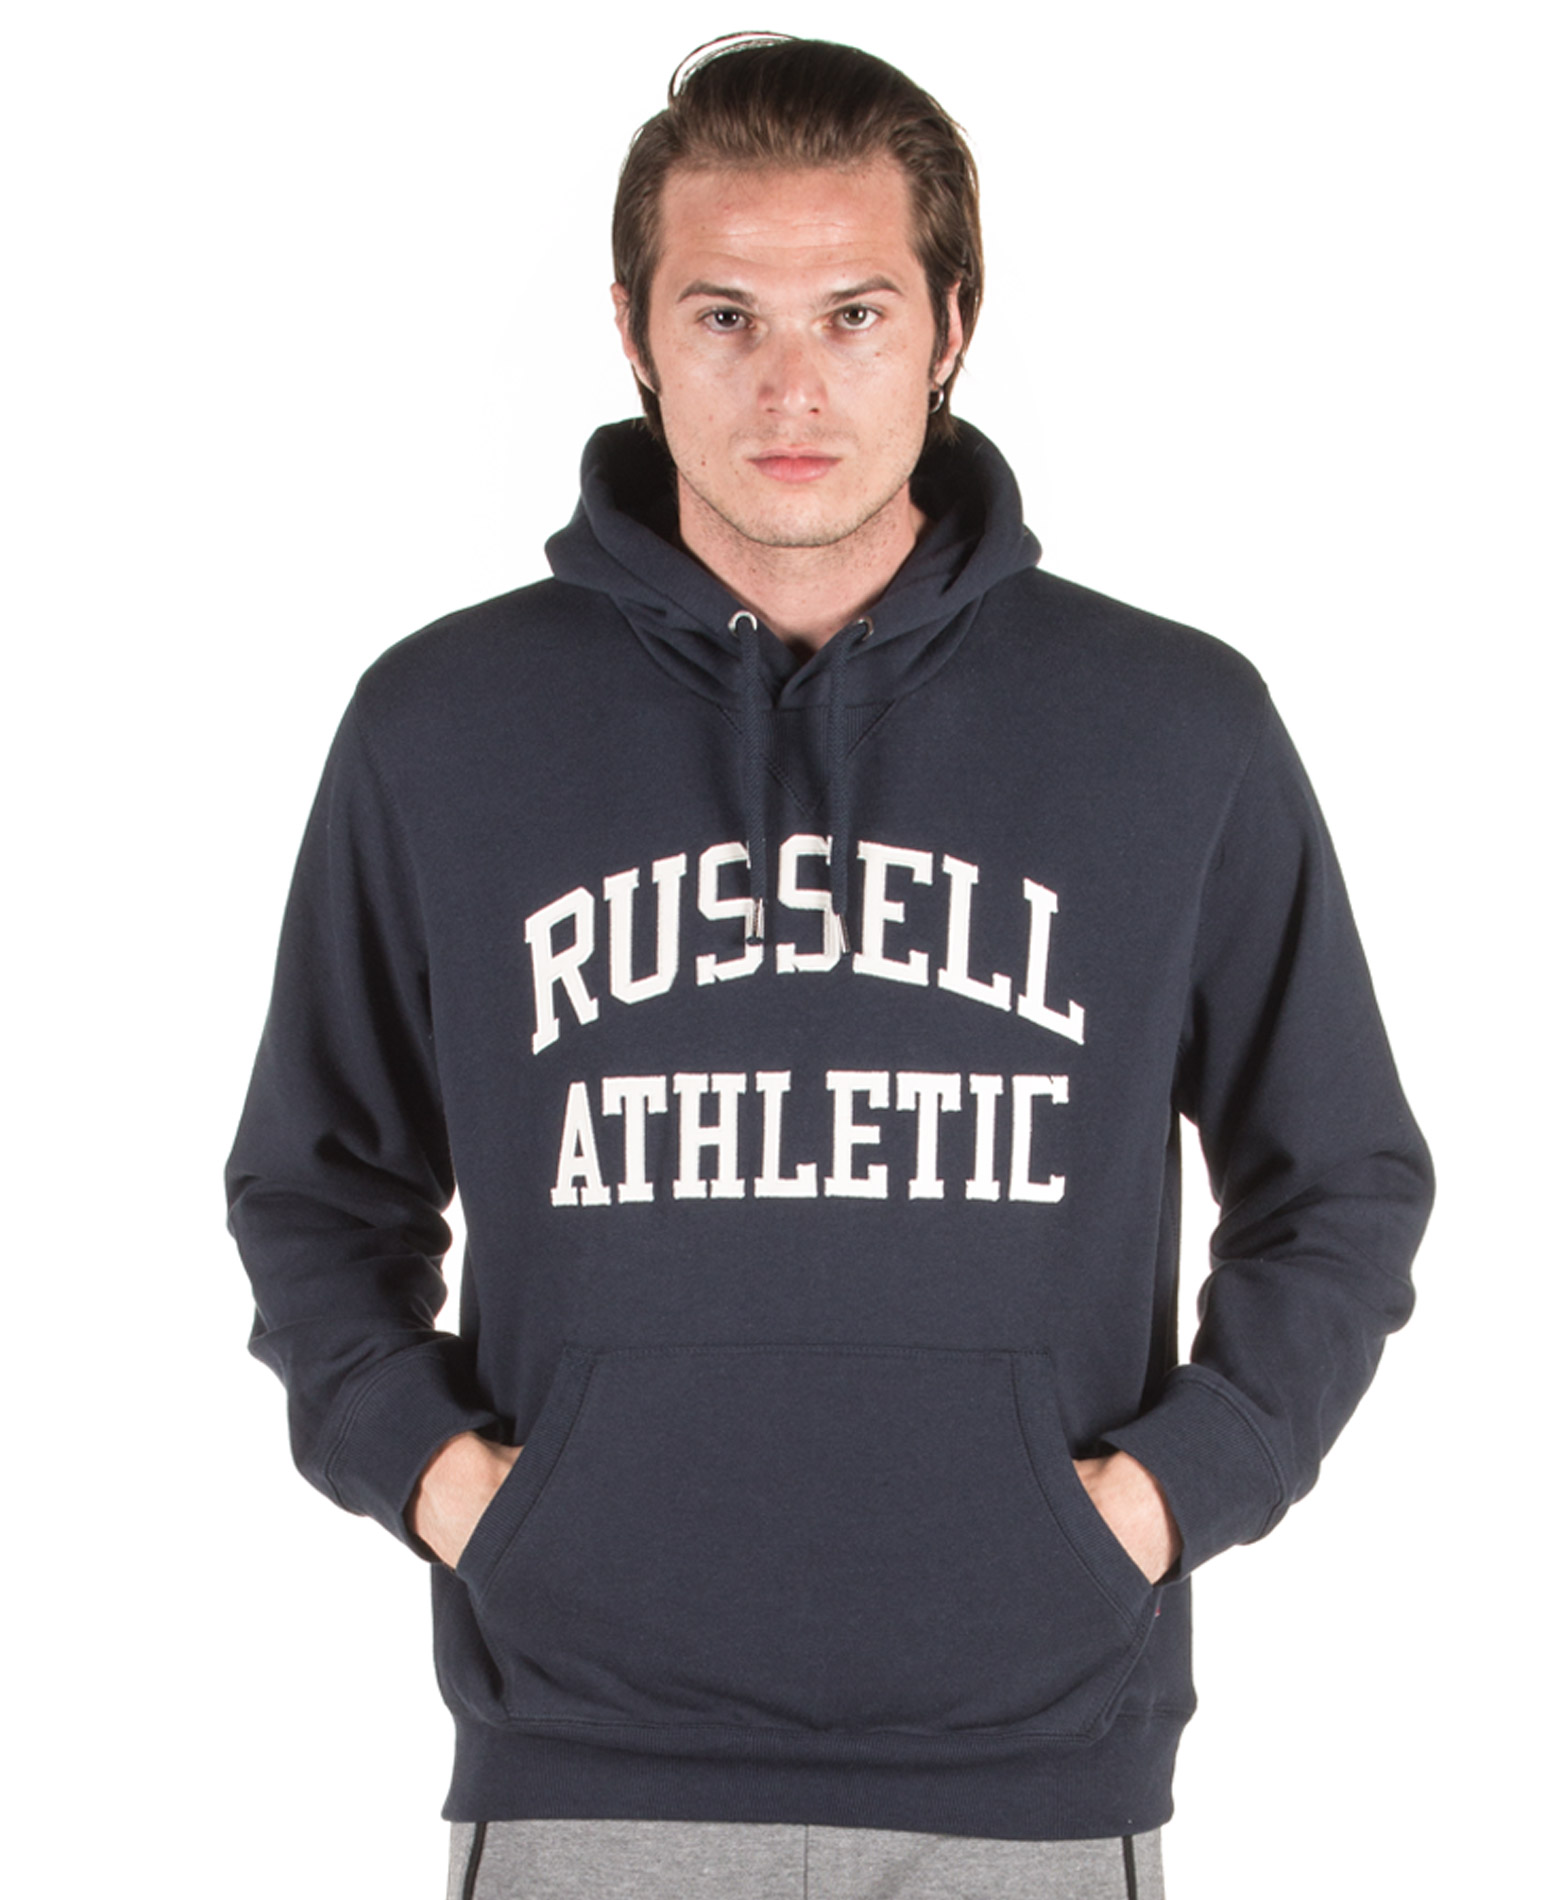 Russell Athletic A8-006-2-190 Μπλε